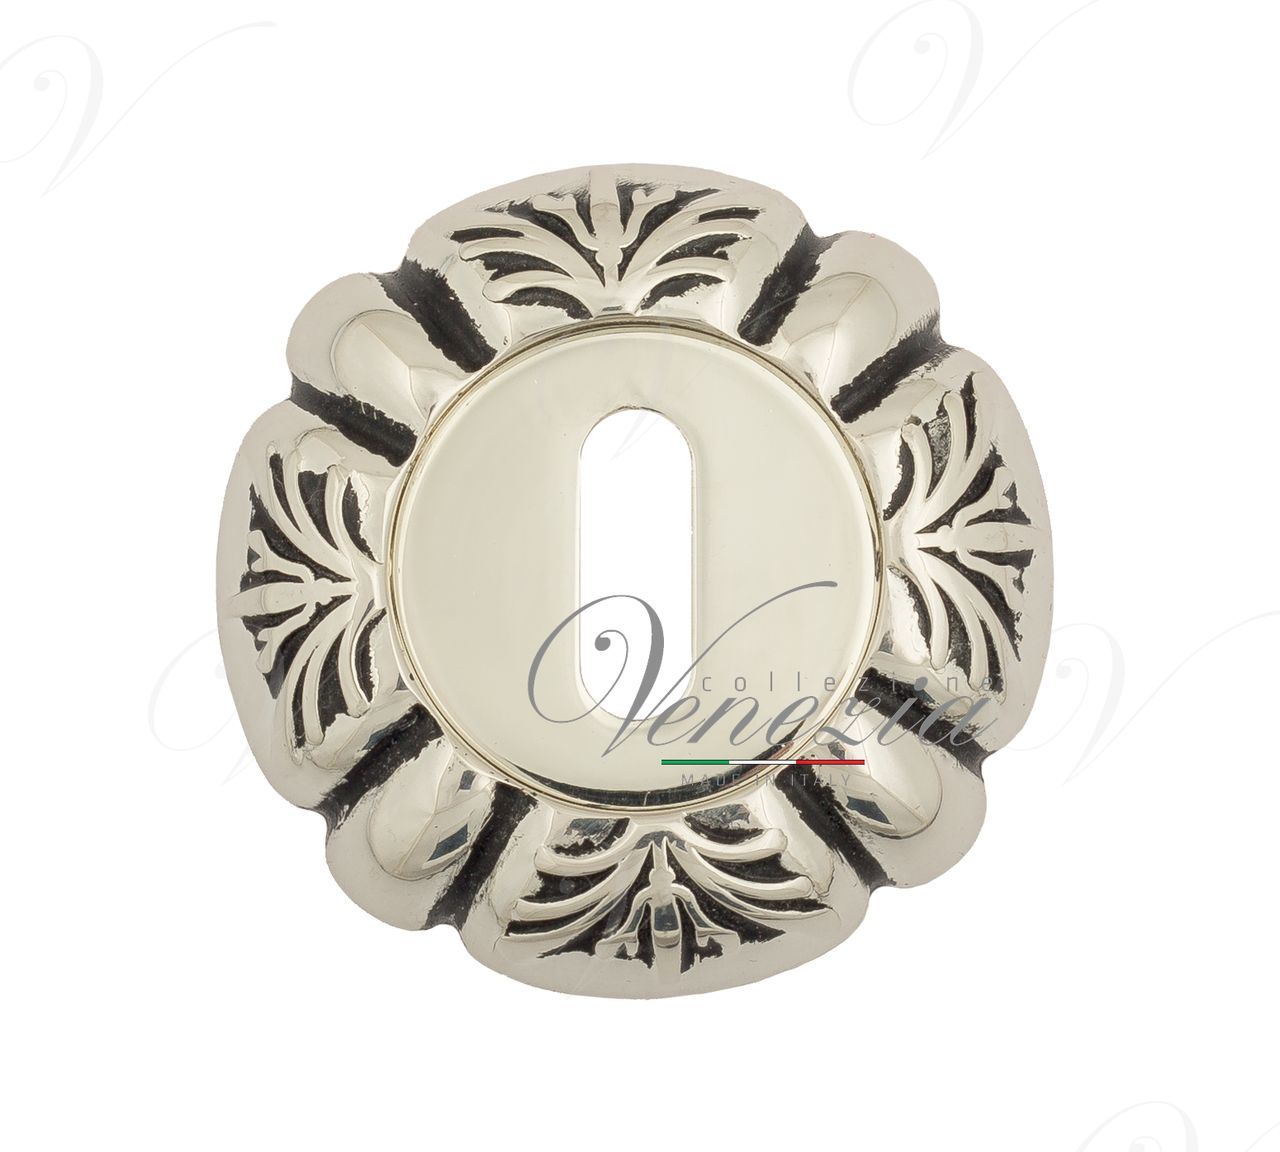 Keyhole Escutcheon Venezia KEY-1 D5 Natural Silver + Black